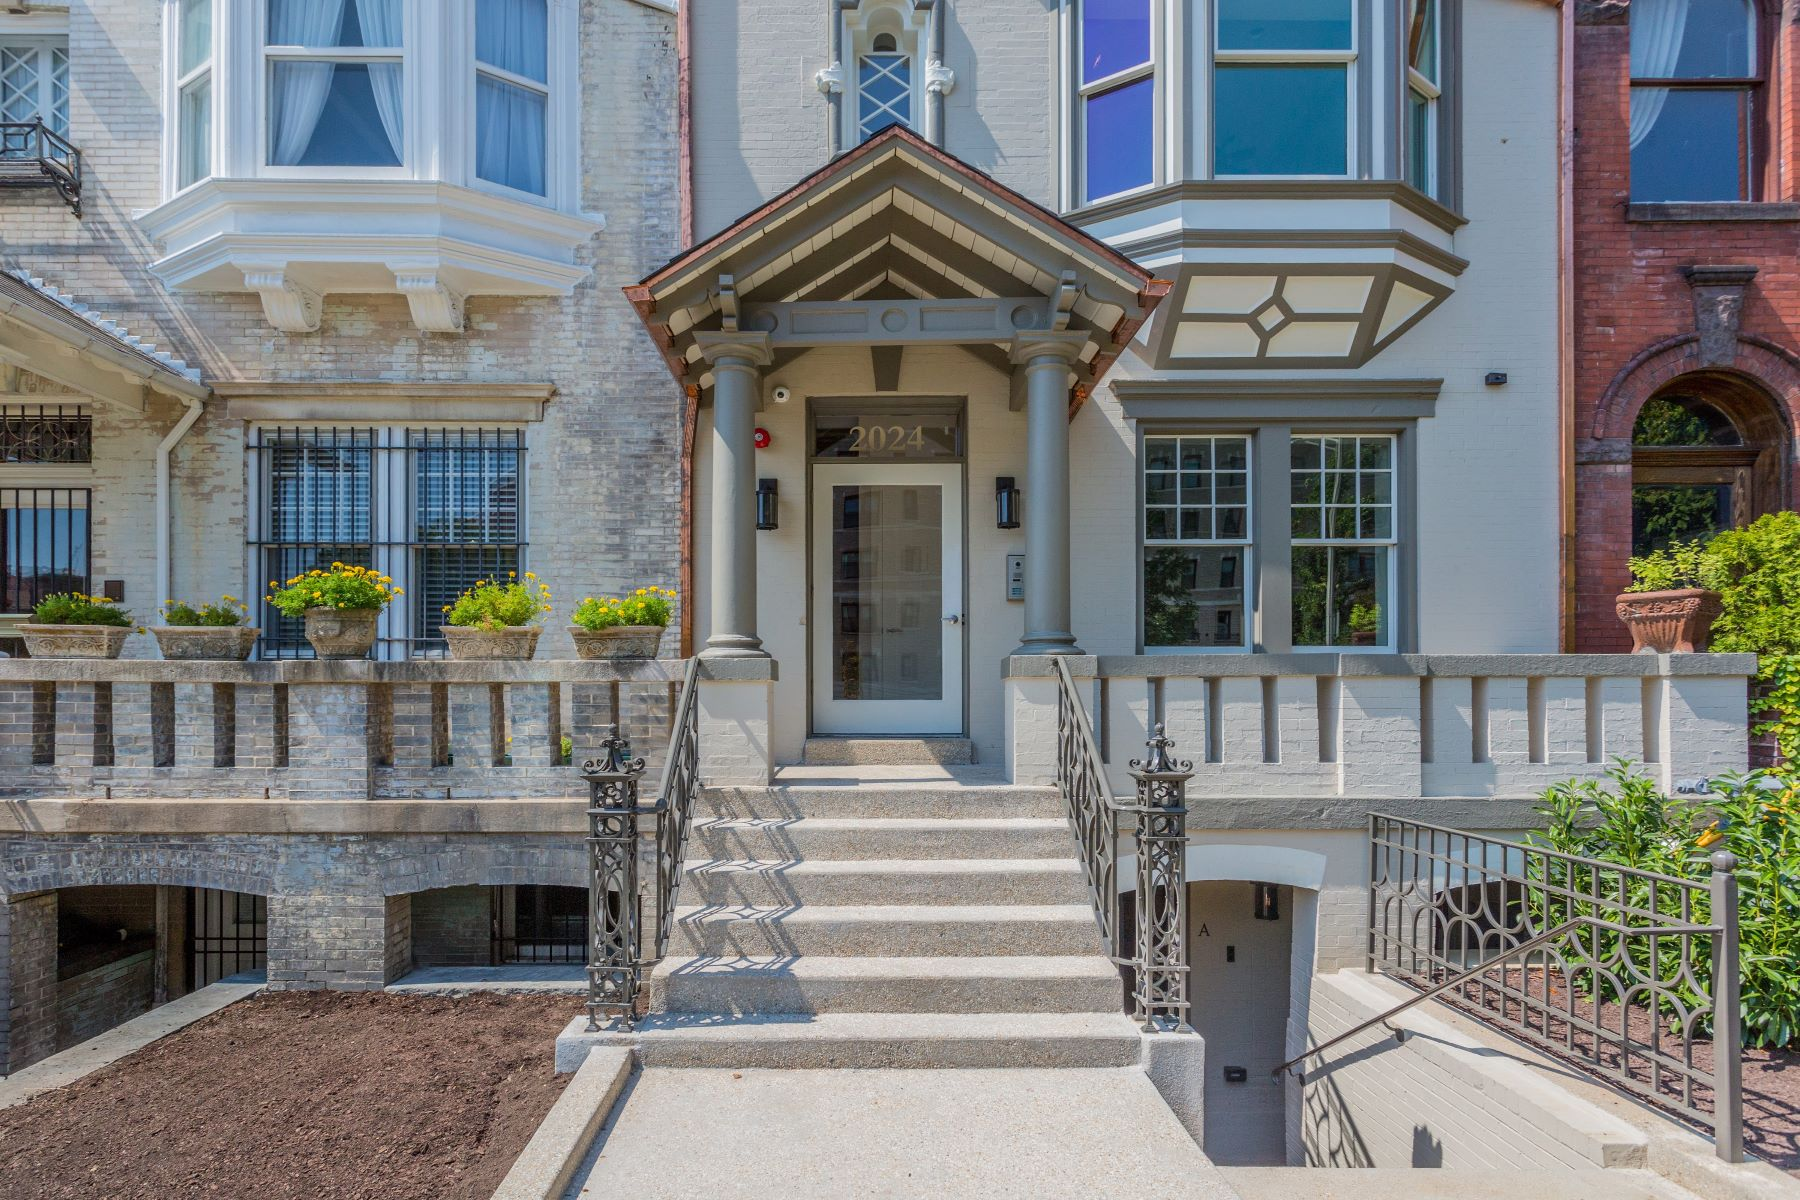 Single Family Home for Sale at 2024 16th Street NW #1 2024 16th Street NW #1 Washington, District Of Columbia 20009 United States